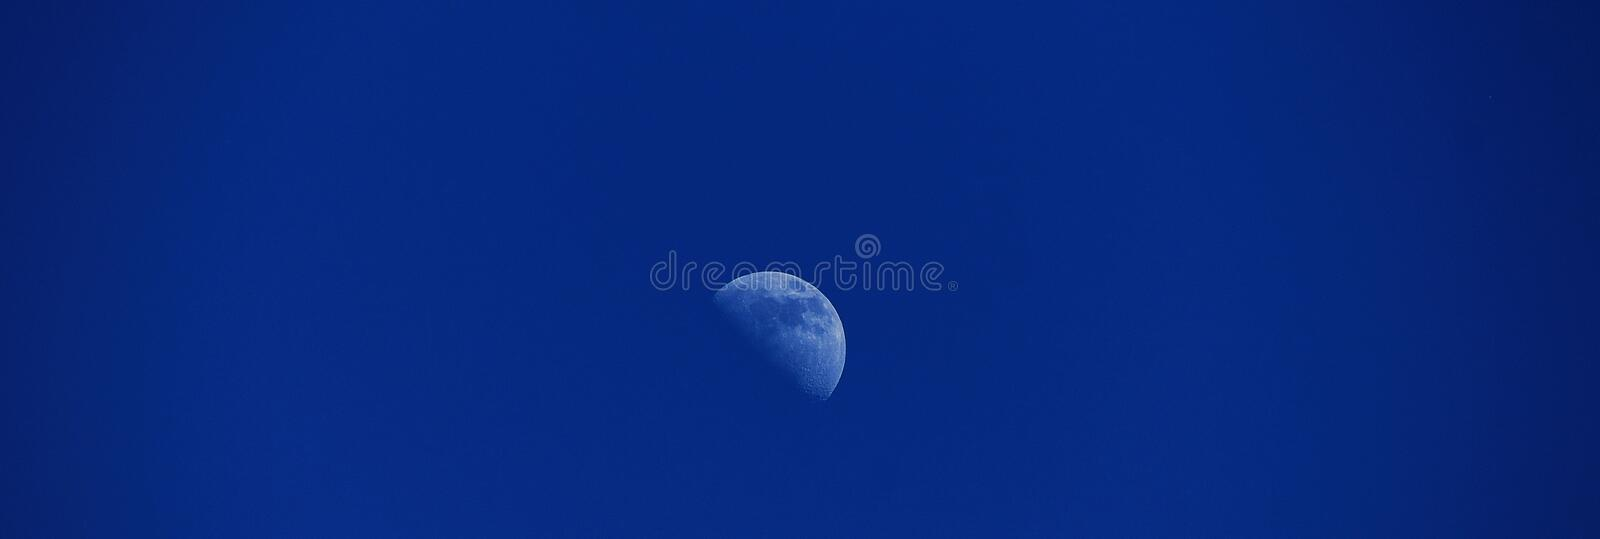 Sky, Blue, Jellyfish, Daytime stock images